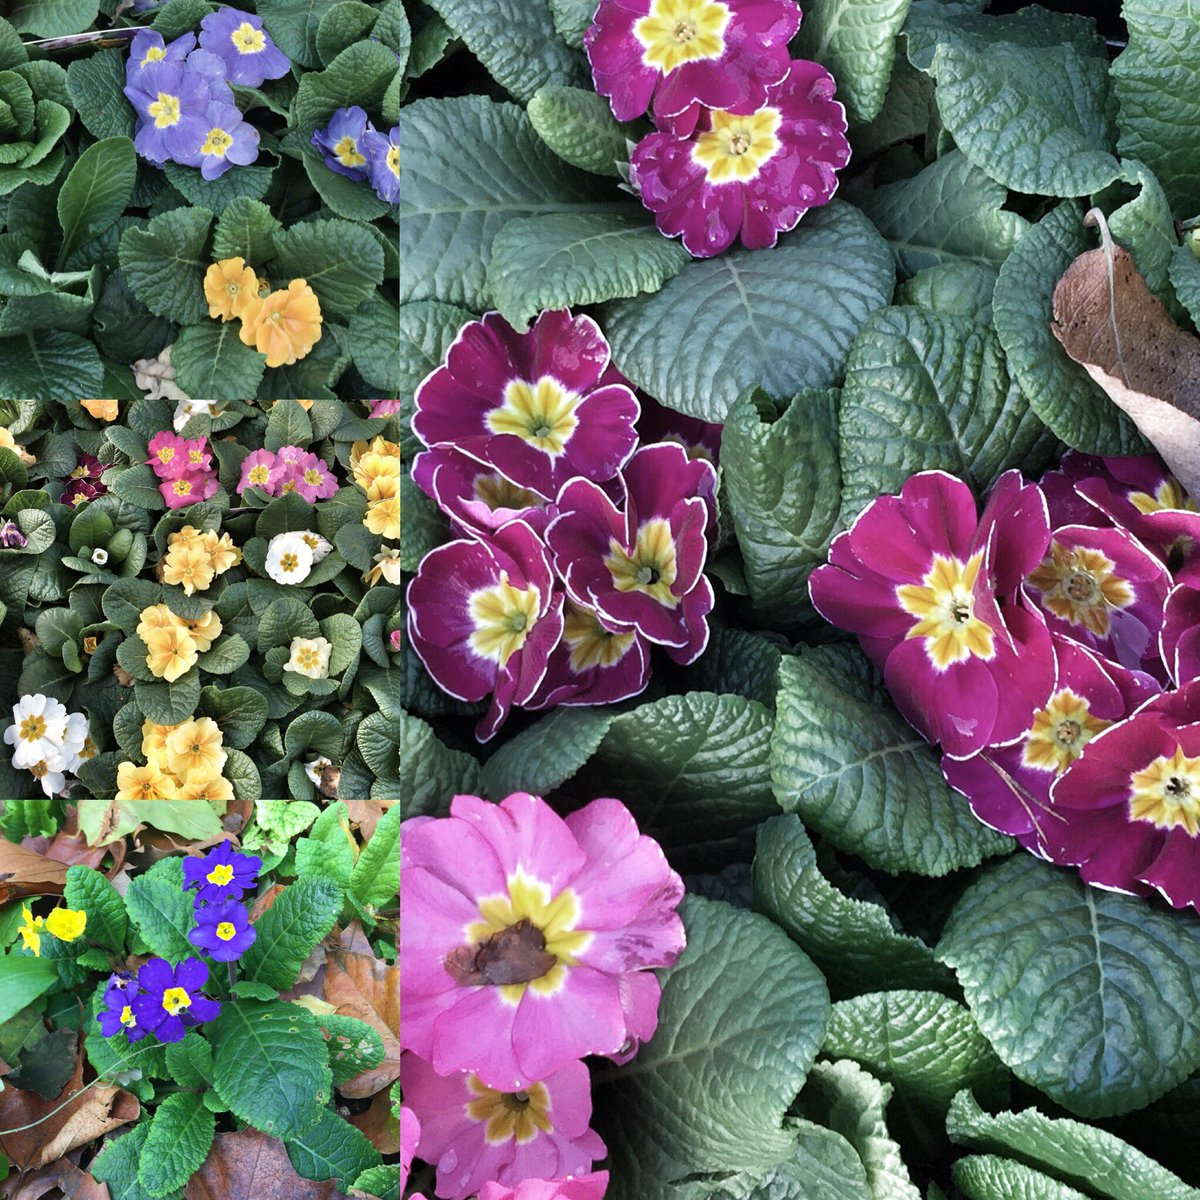 Thank goodness for Primrose! Need some #colour in the #garden at this time of year #November #flowers #bloom #gardenchat <br>http://pic.twitter.com/OzMgkww6BI